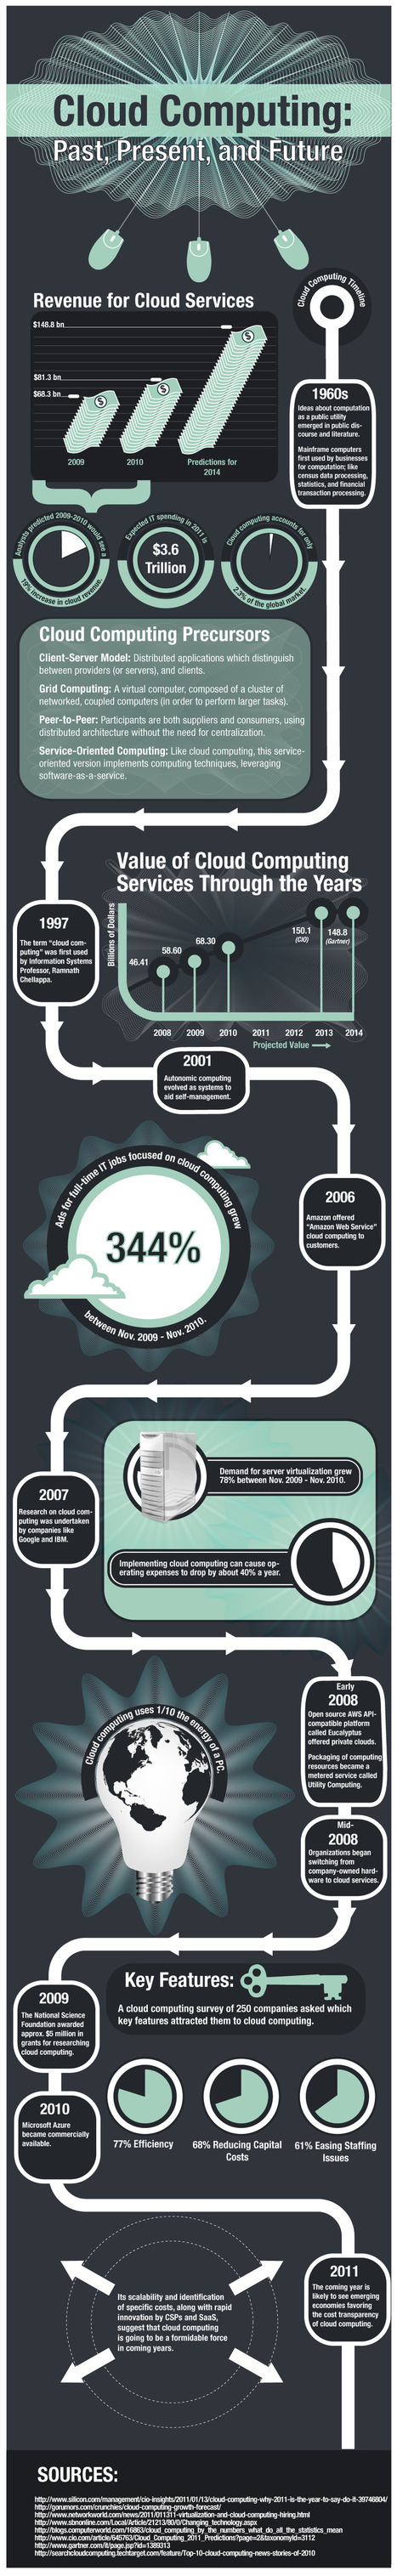 Infographic: Value of Cloud Computing Services Through the Years | Social media and education | Scoop.it